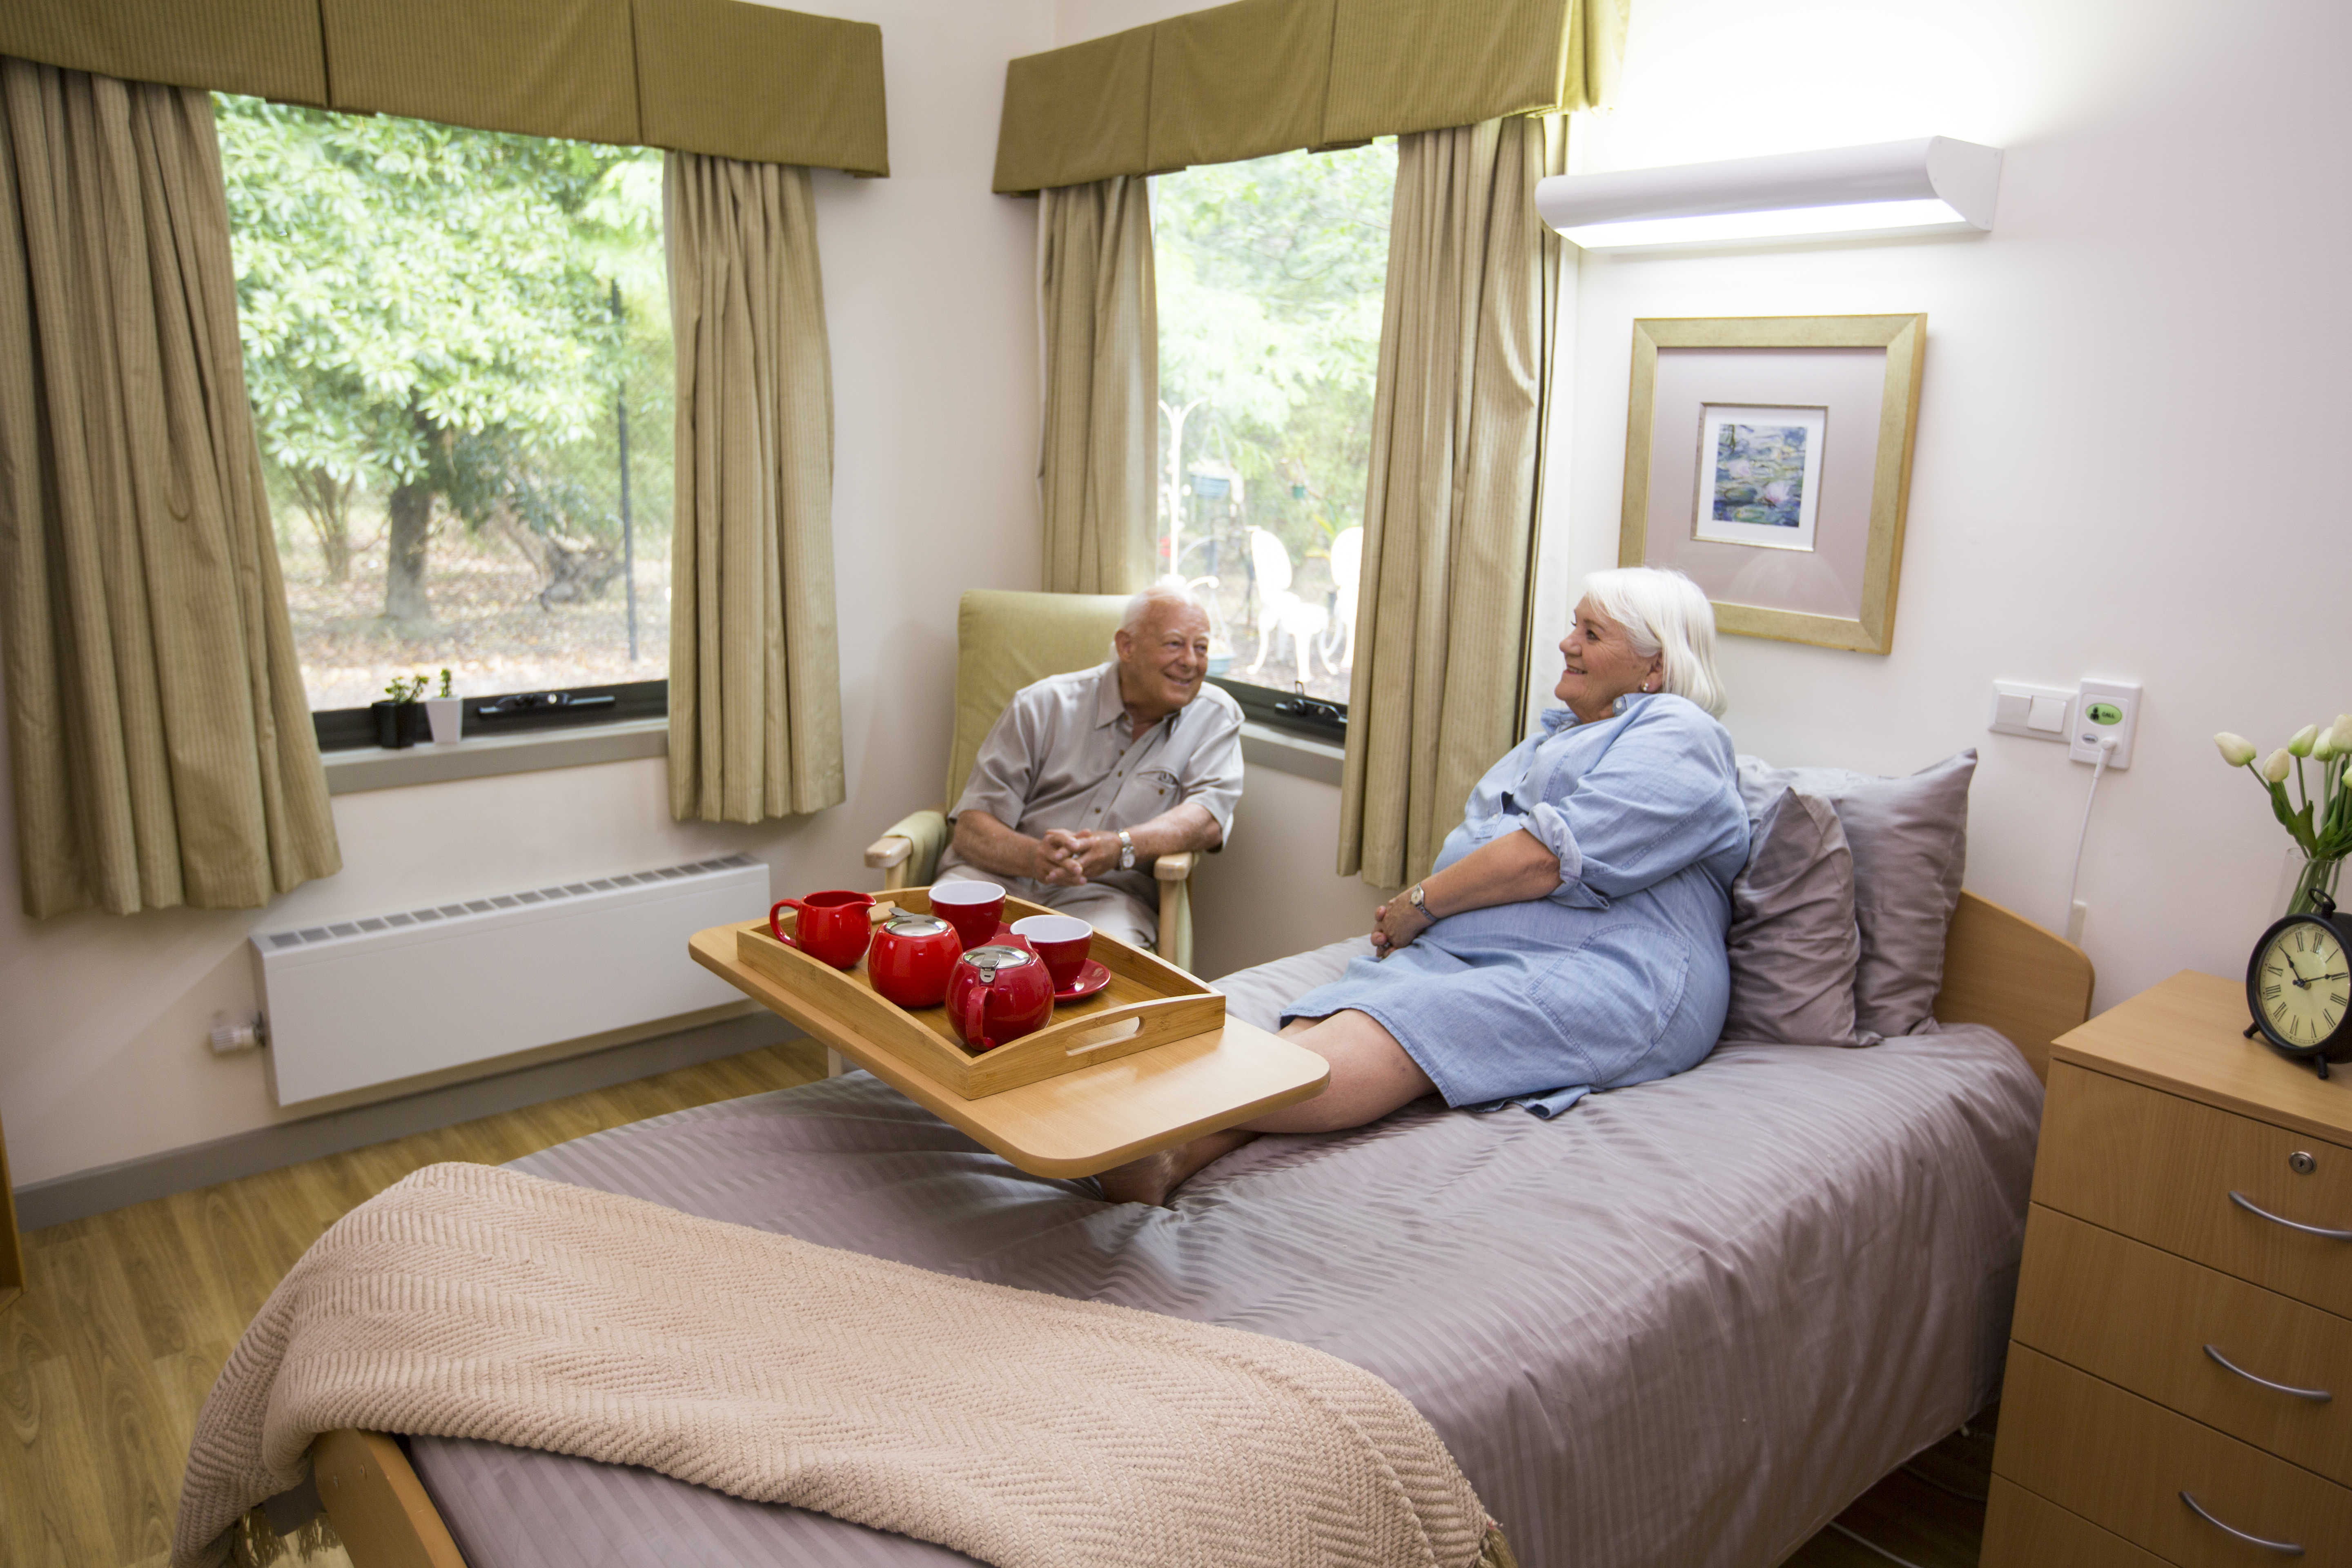 Image of couple in bedroom at HeathMont